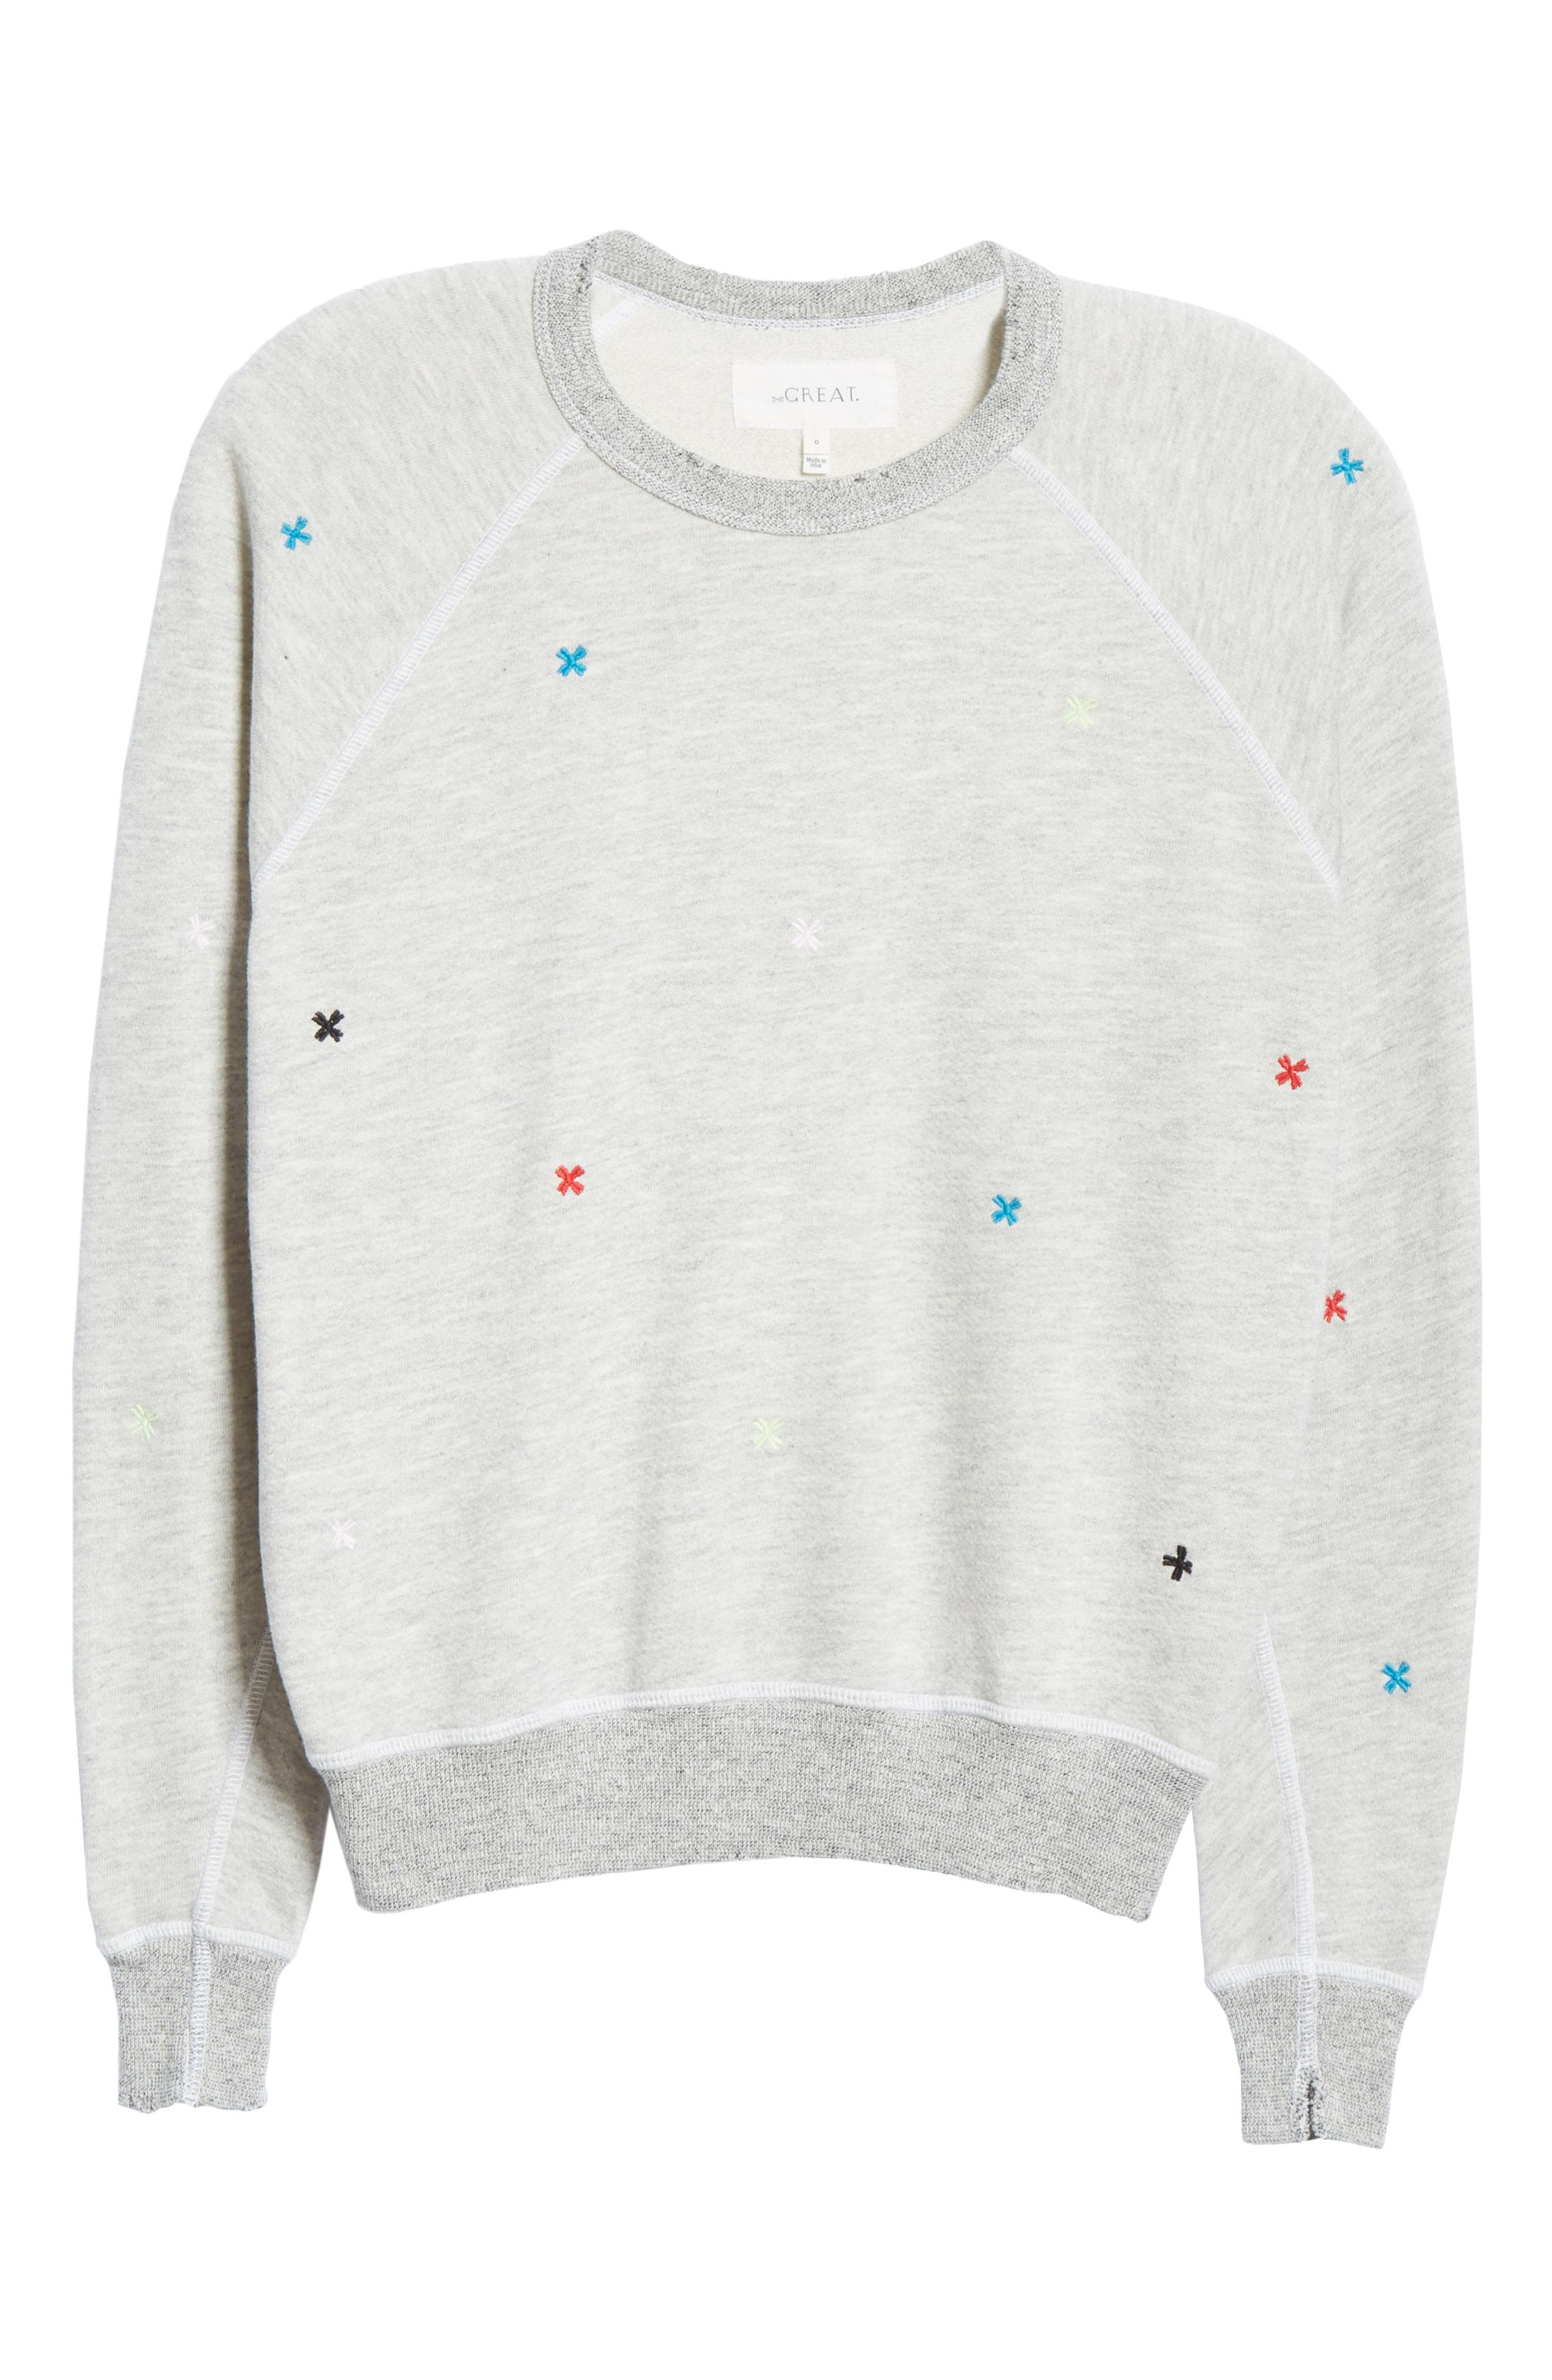 The College Embroidered Sweatshirt,                             Alternate thumbnail 6, color,                             HEATHER GREY/ MULTI